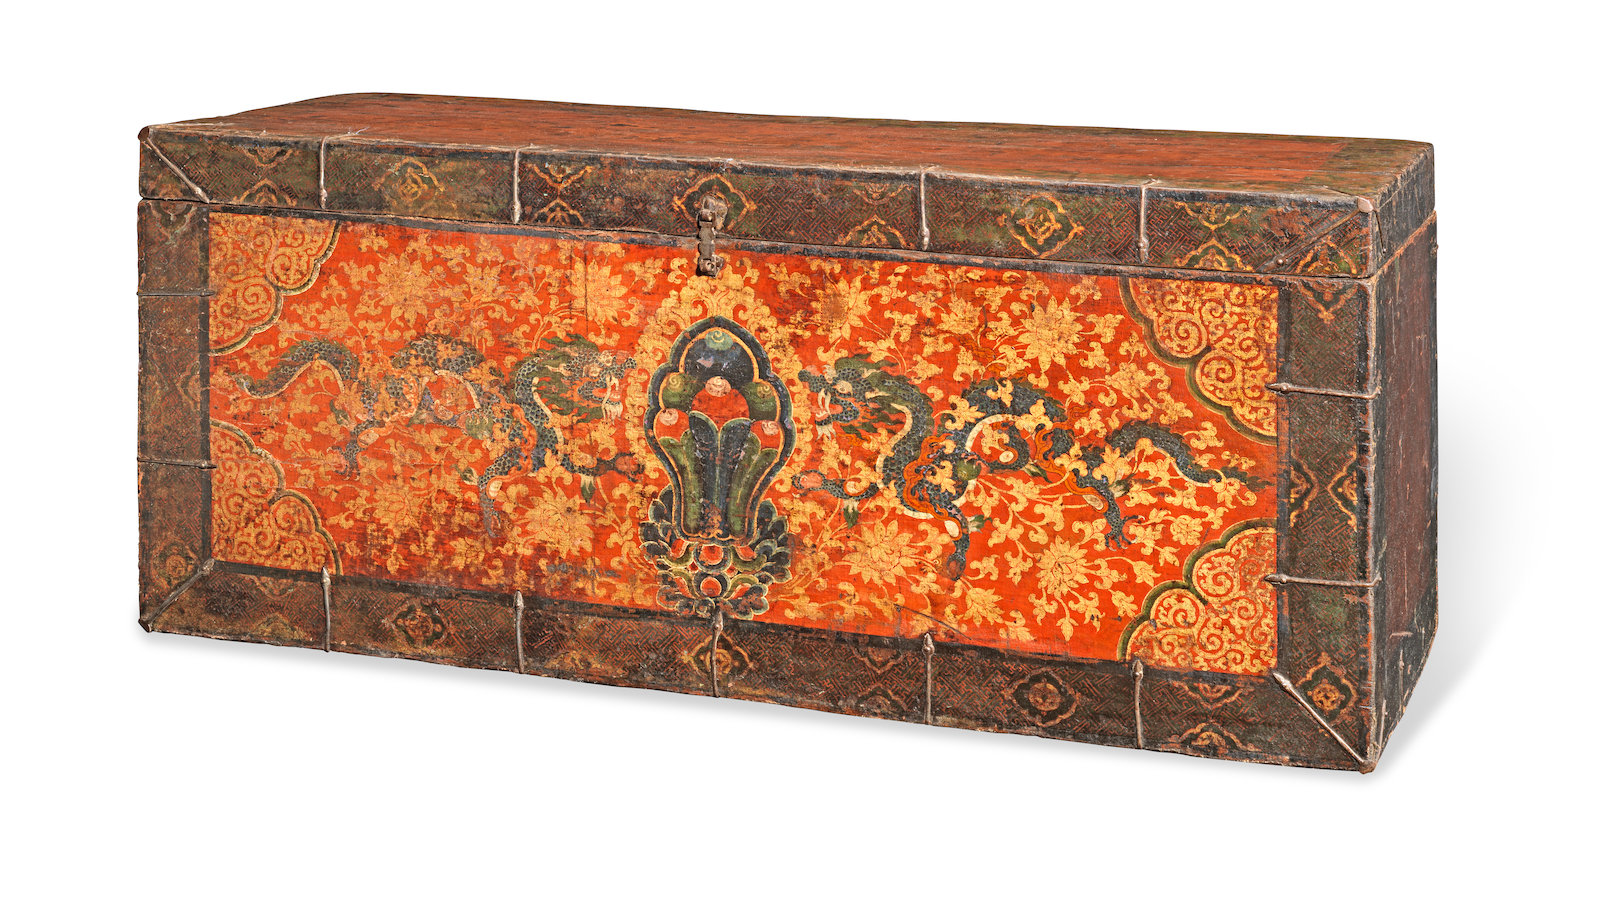 Tibet, 17th/18th century. Estimate: £3,000-5,000. Published: 'Wooden Wonders - Tibetan Furniture In Secular And Religious Life', David Kamansky, p.263, no. 83.